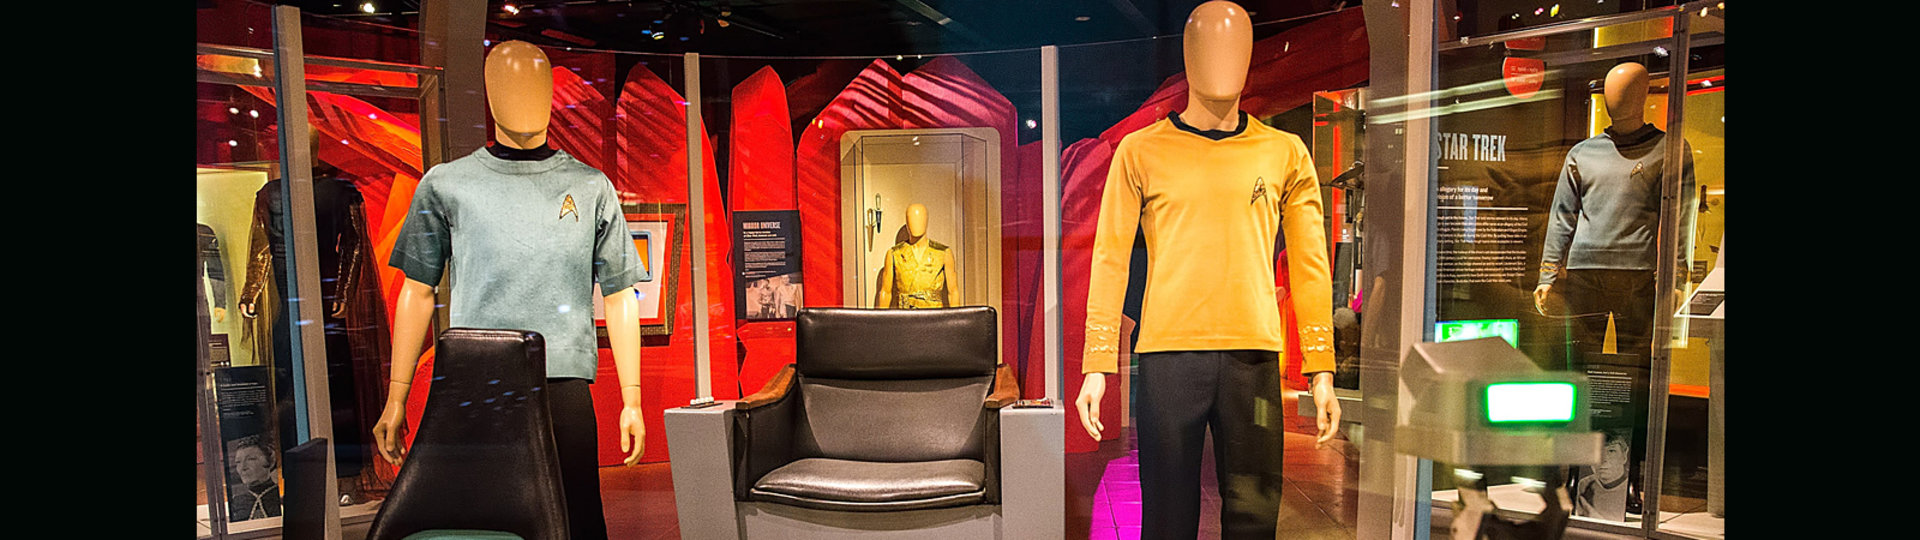 Star Trek exhibition image